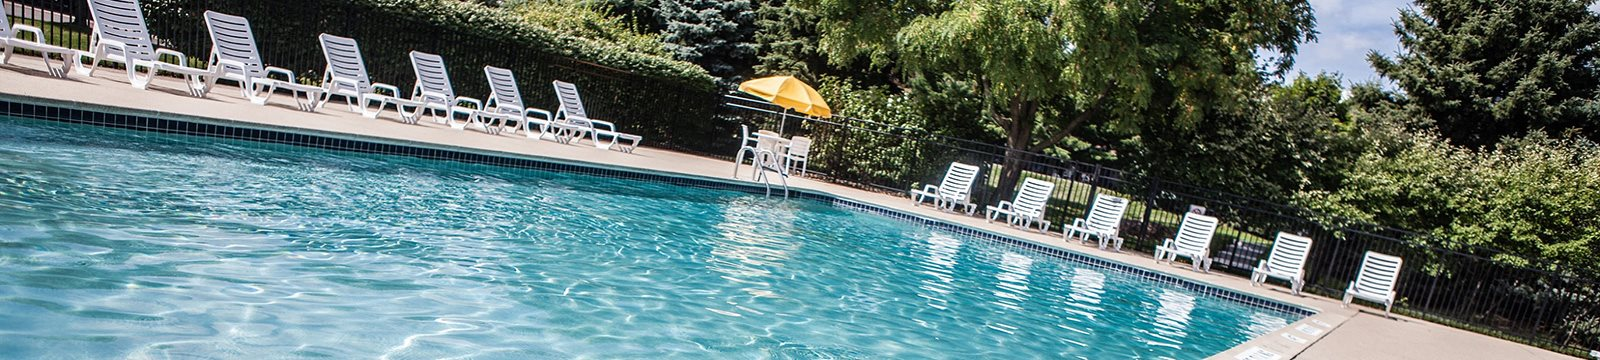 Resort-Style Pool at Dover Hills Apartments, Michigan